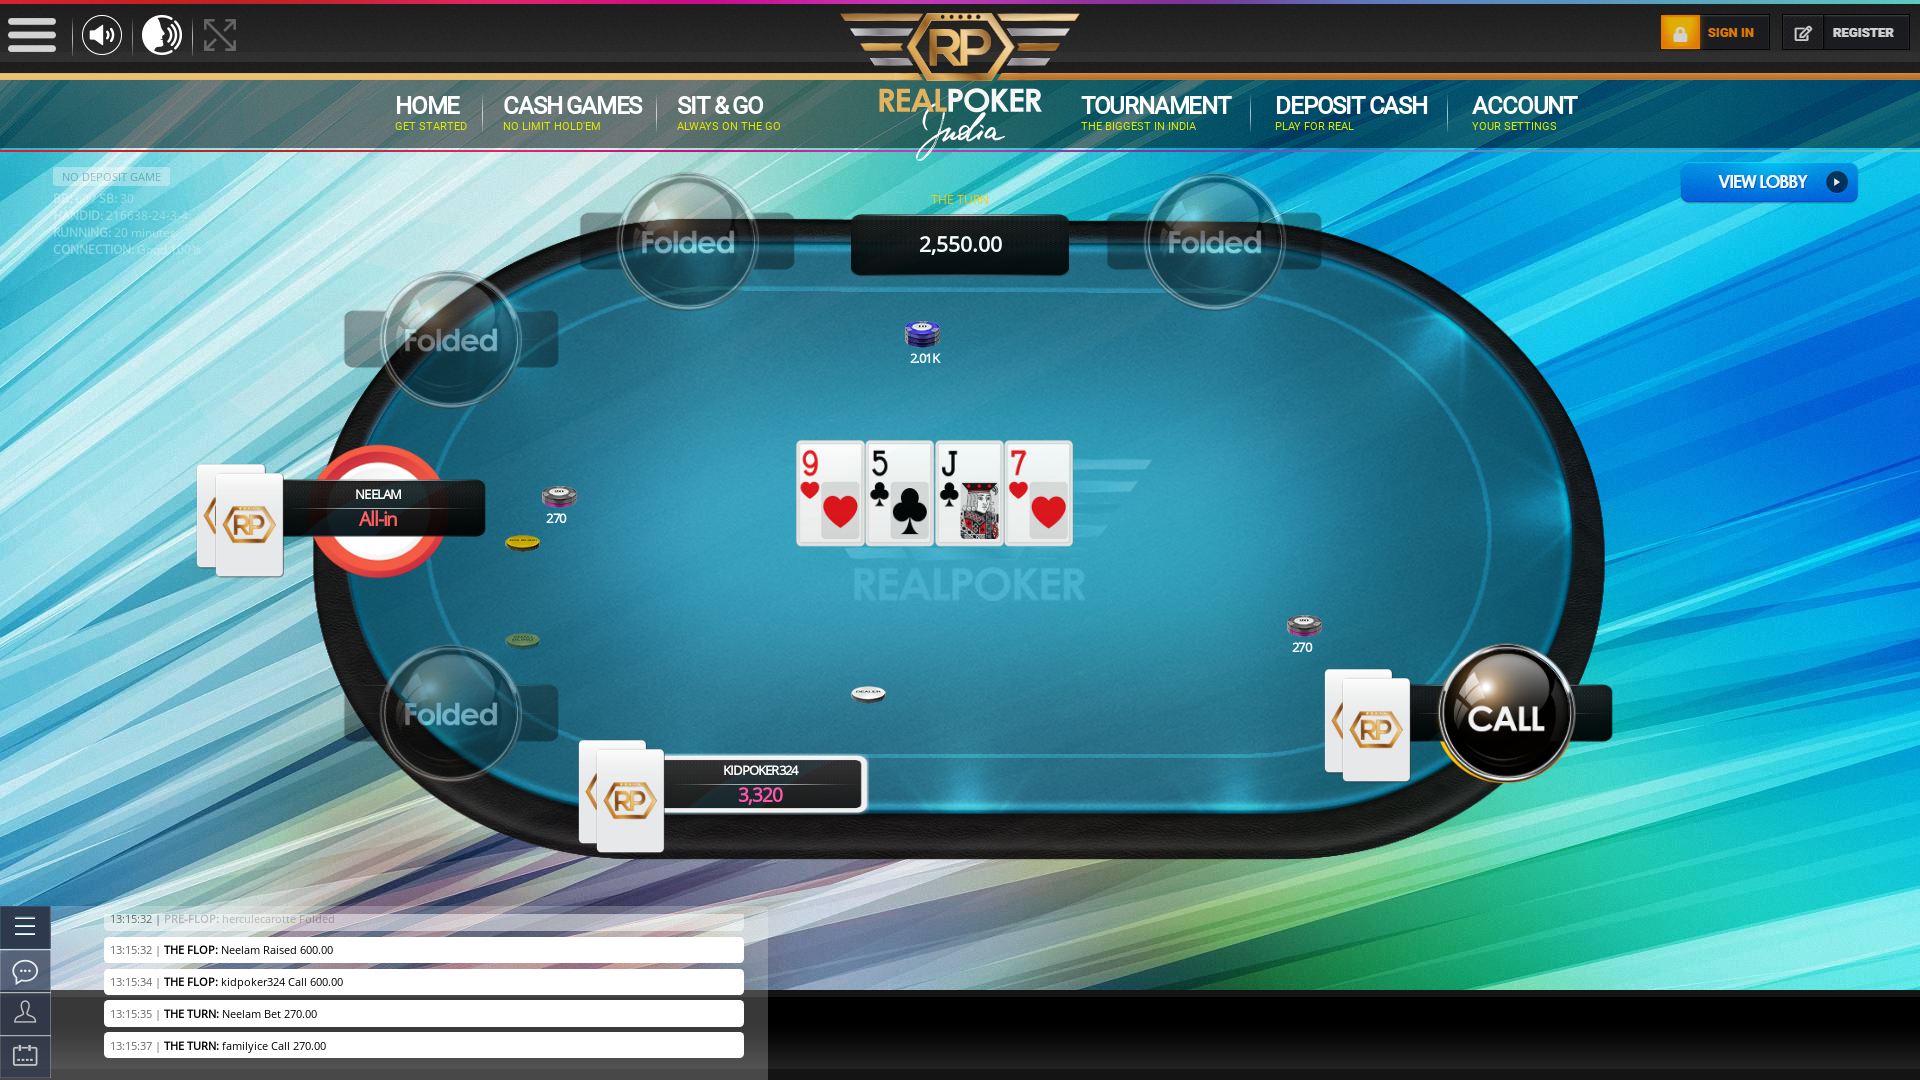 Real poker 10 player table in the 20th minute of the match